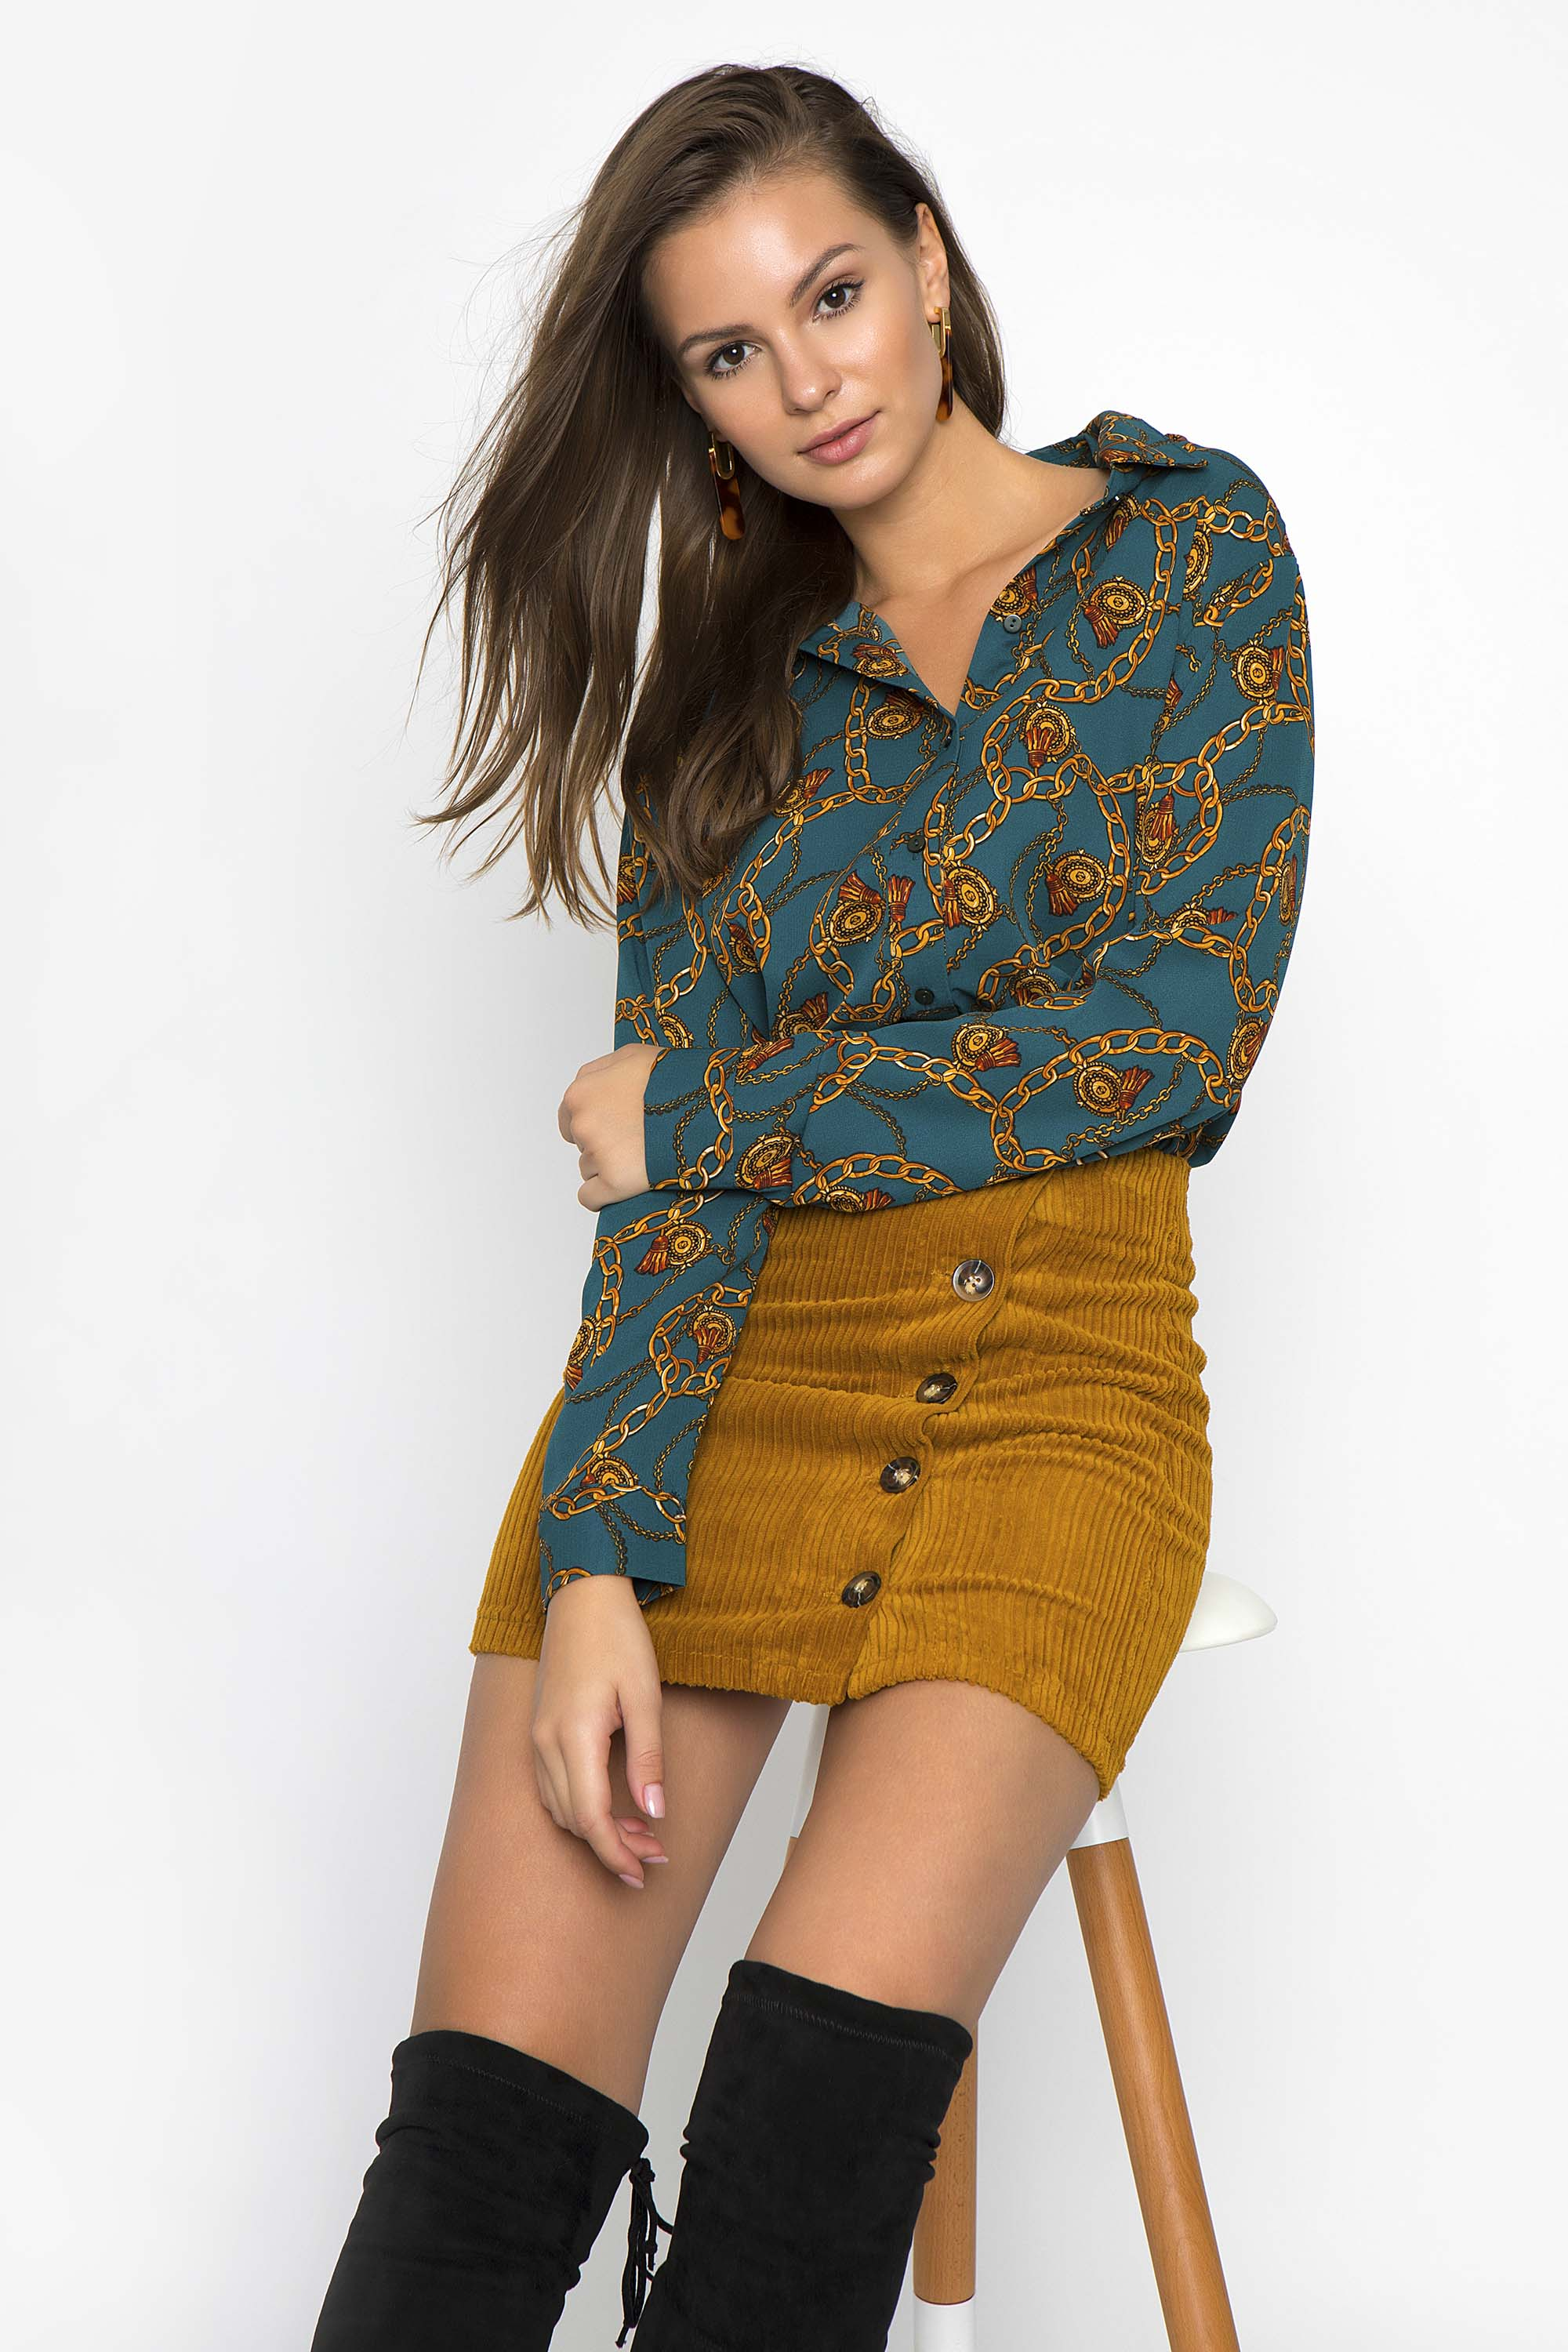 d49f0be0b520 ΕΜΠΡΙΜΕ ΠΟΥΚΑΜΙΣΑ - CLOTHES -  Tops -  Πουκάμισα